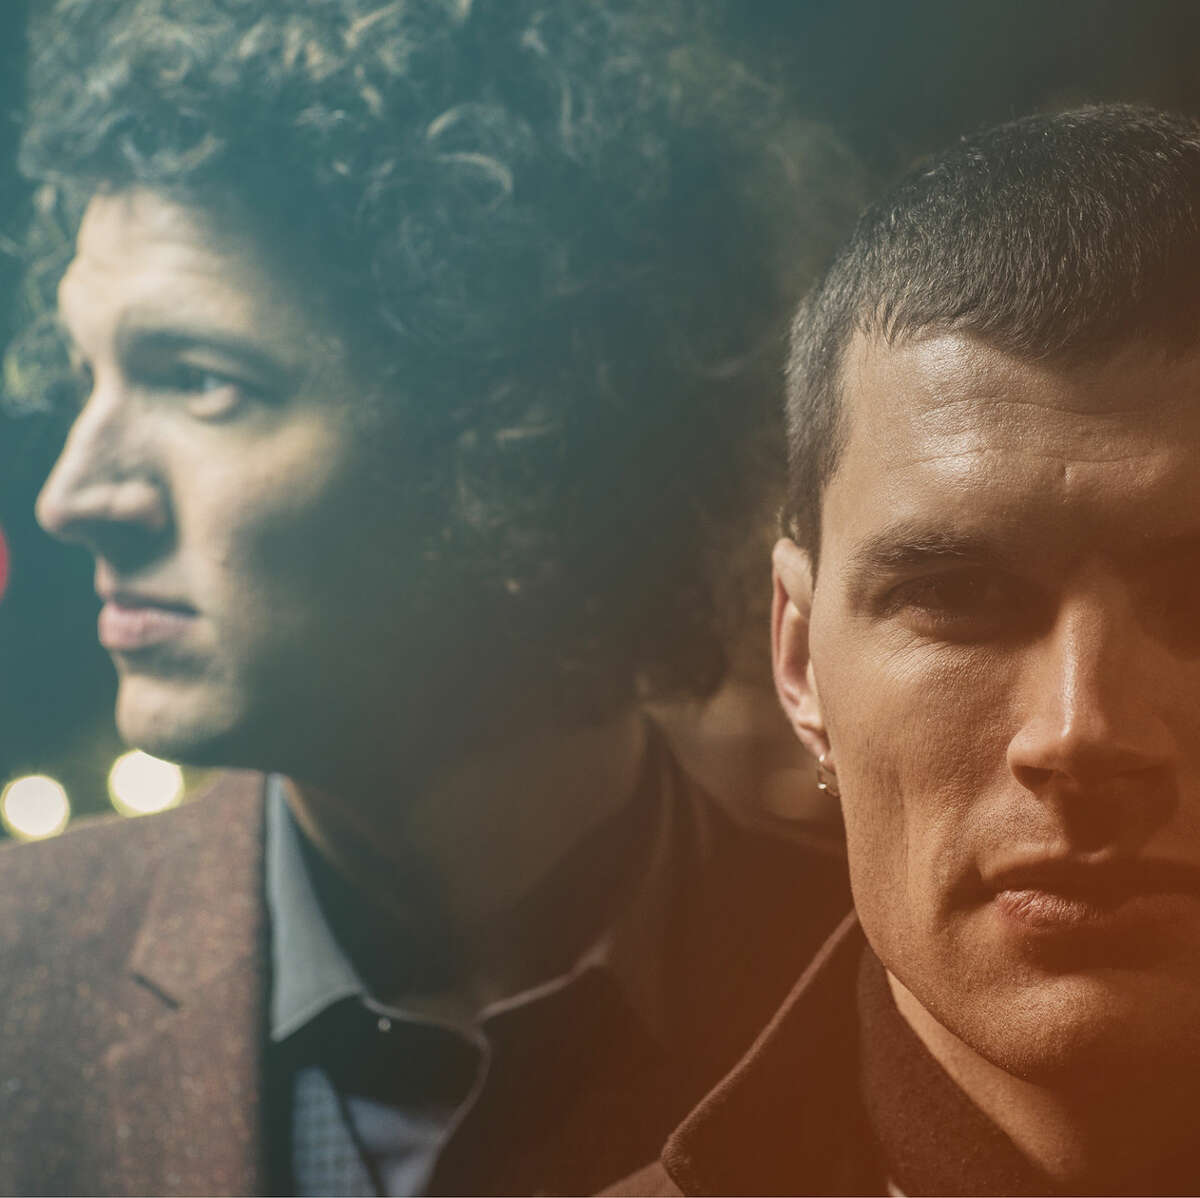 Brothers Luke, left, and Jake Smallbone are the creative force behind Christian band For King and Country.